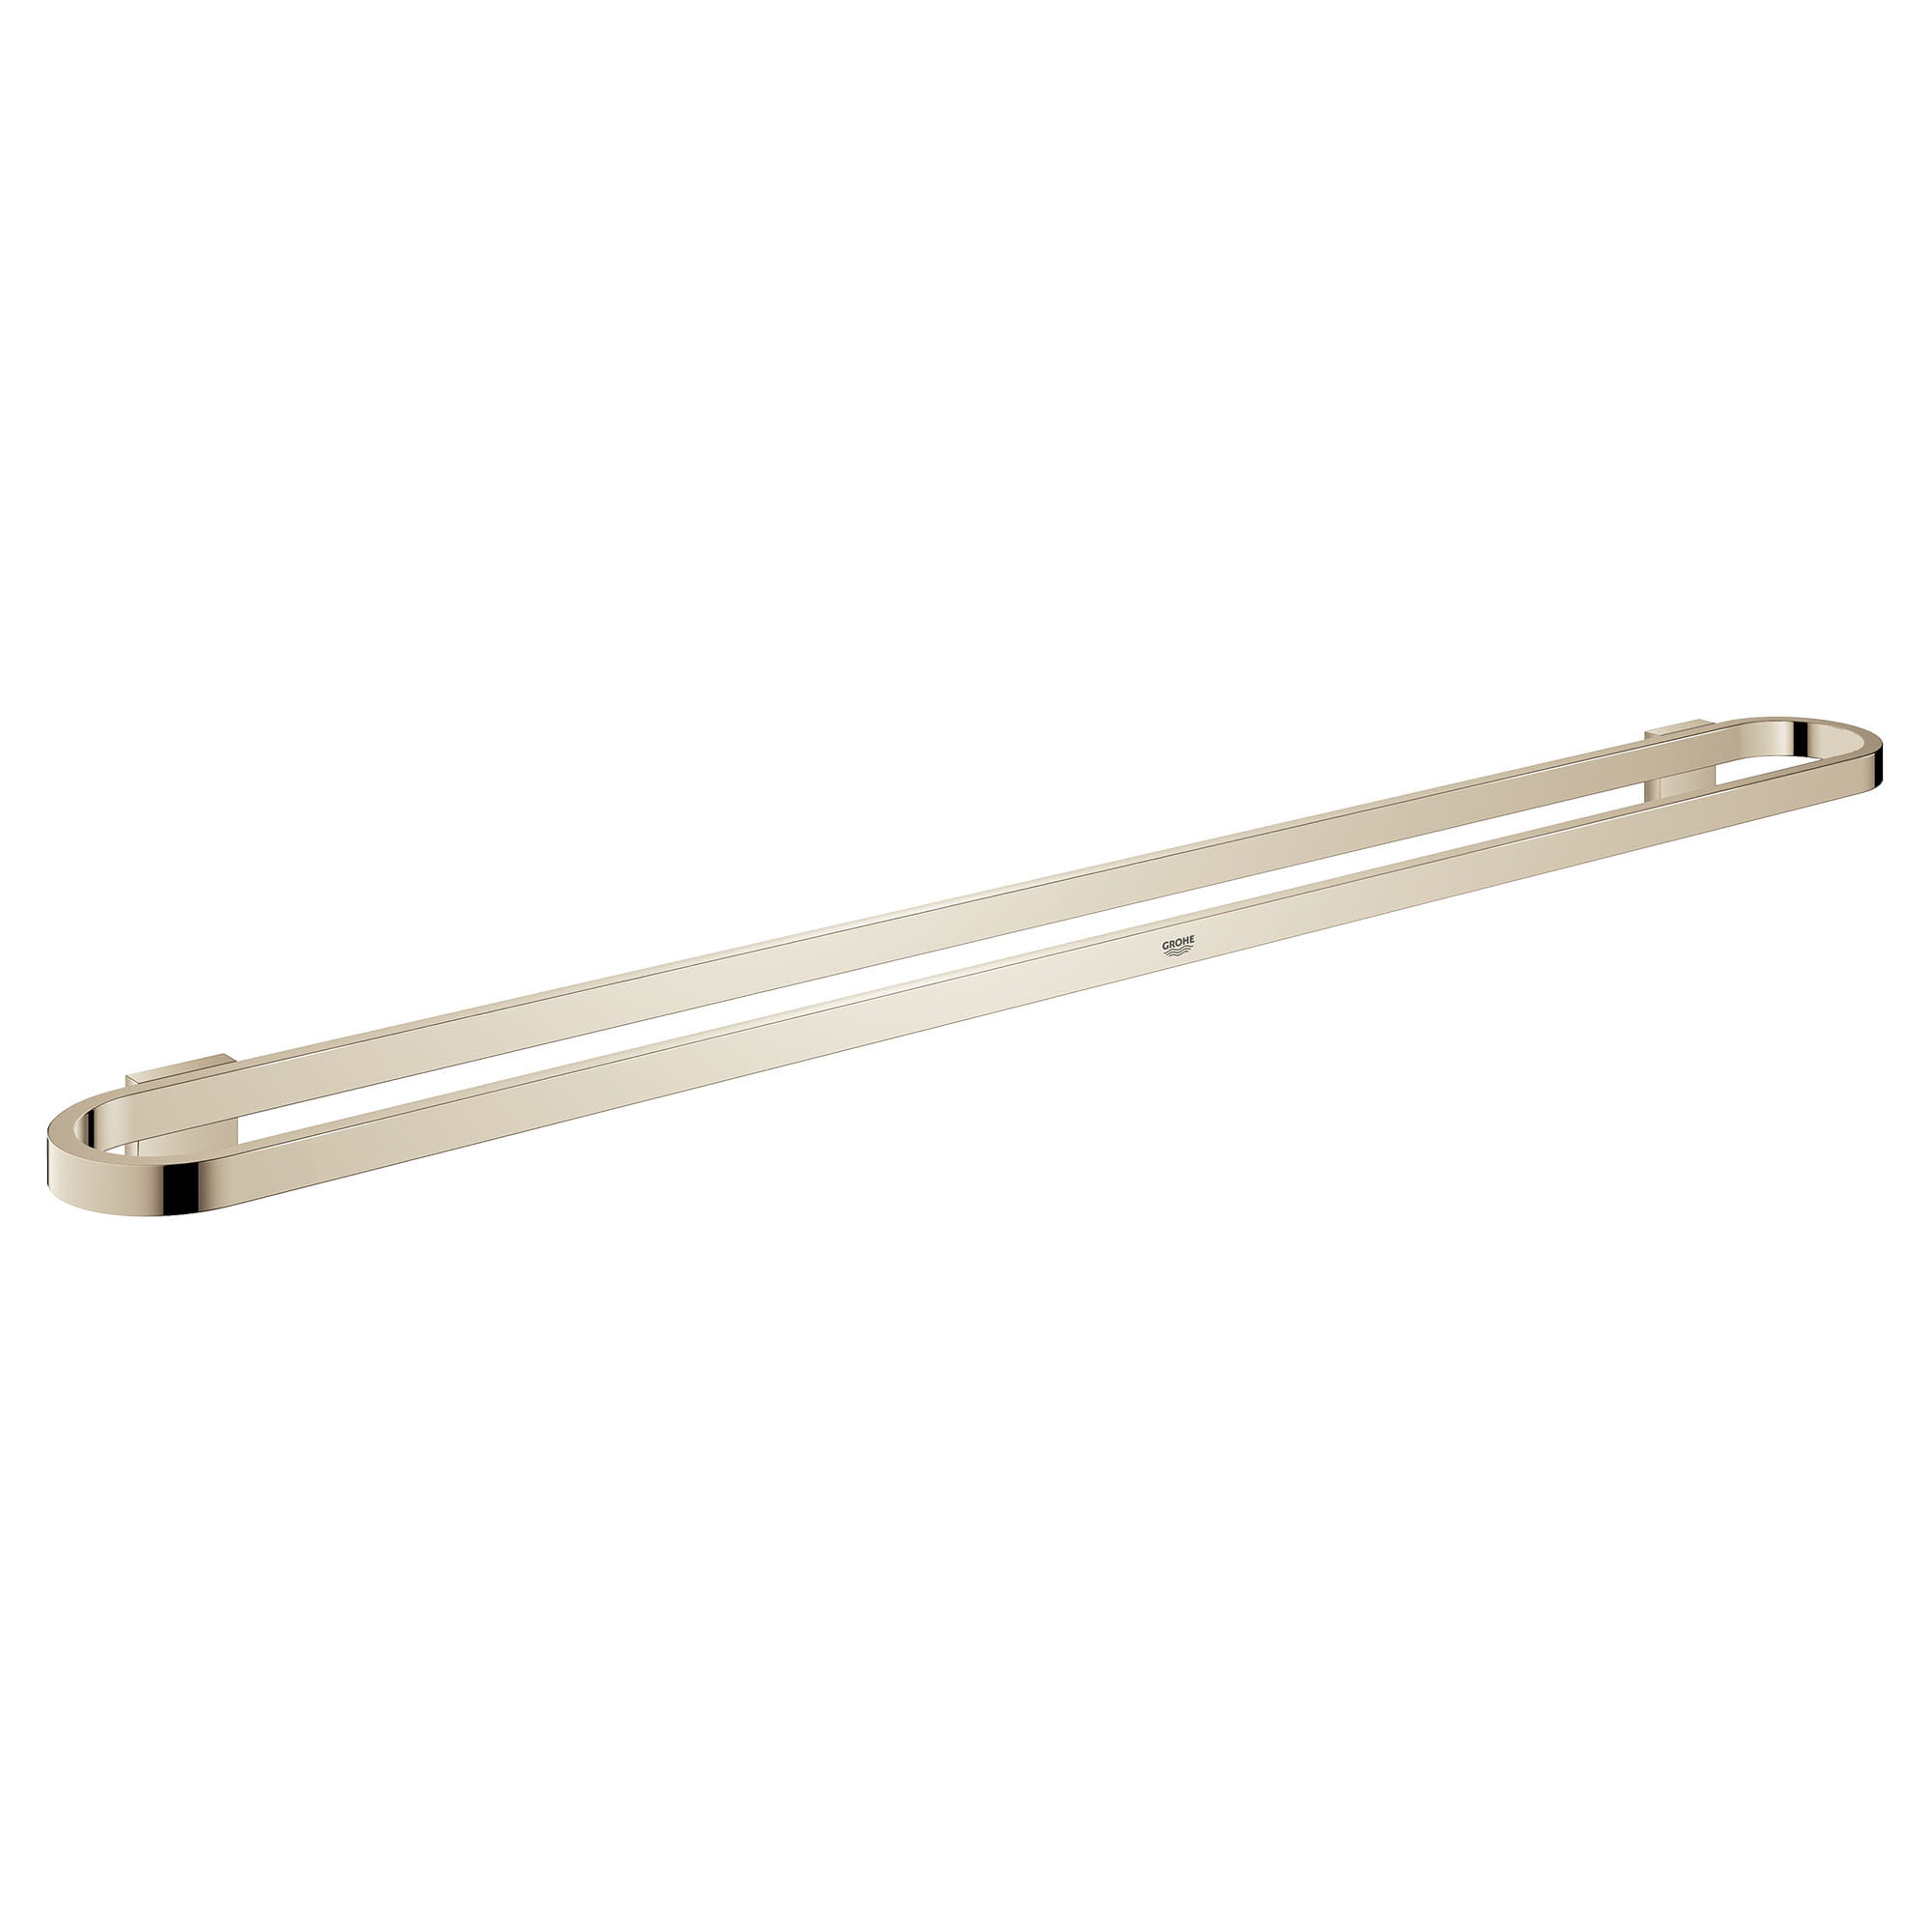 Porte serviettes 600mm 32 po GROHE POLISHED NICKEL